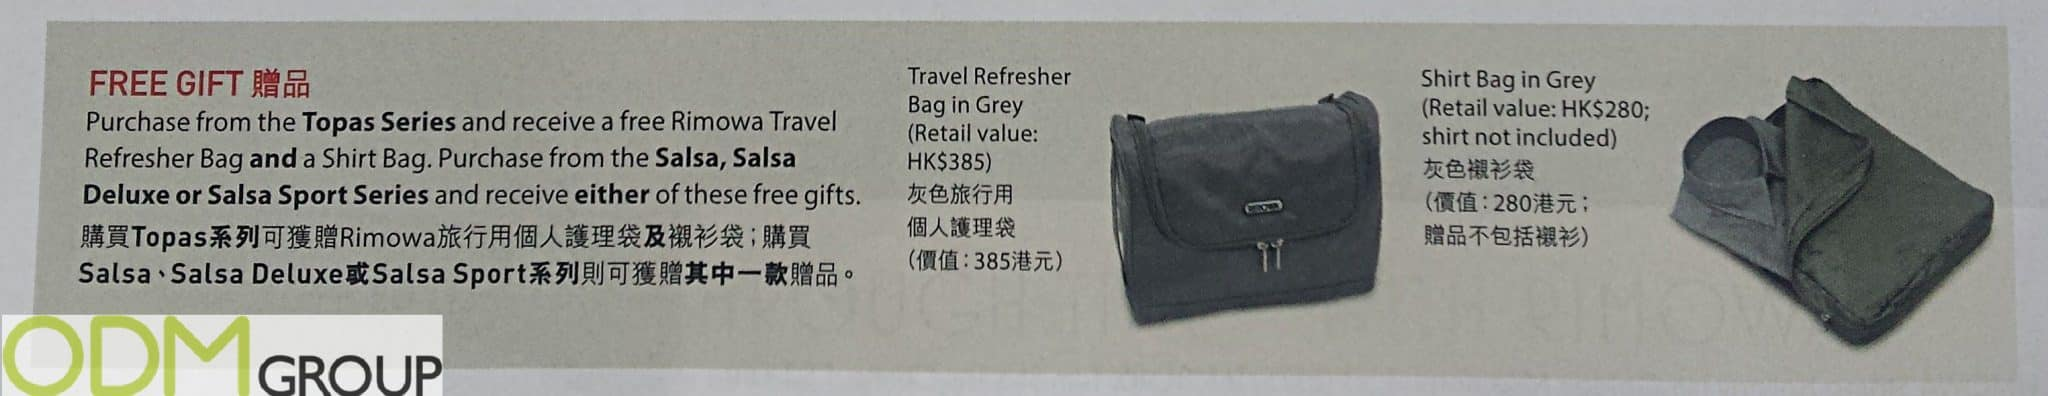 Magazine Promotion - Rimowa Branded Bags as Purchase Gifts